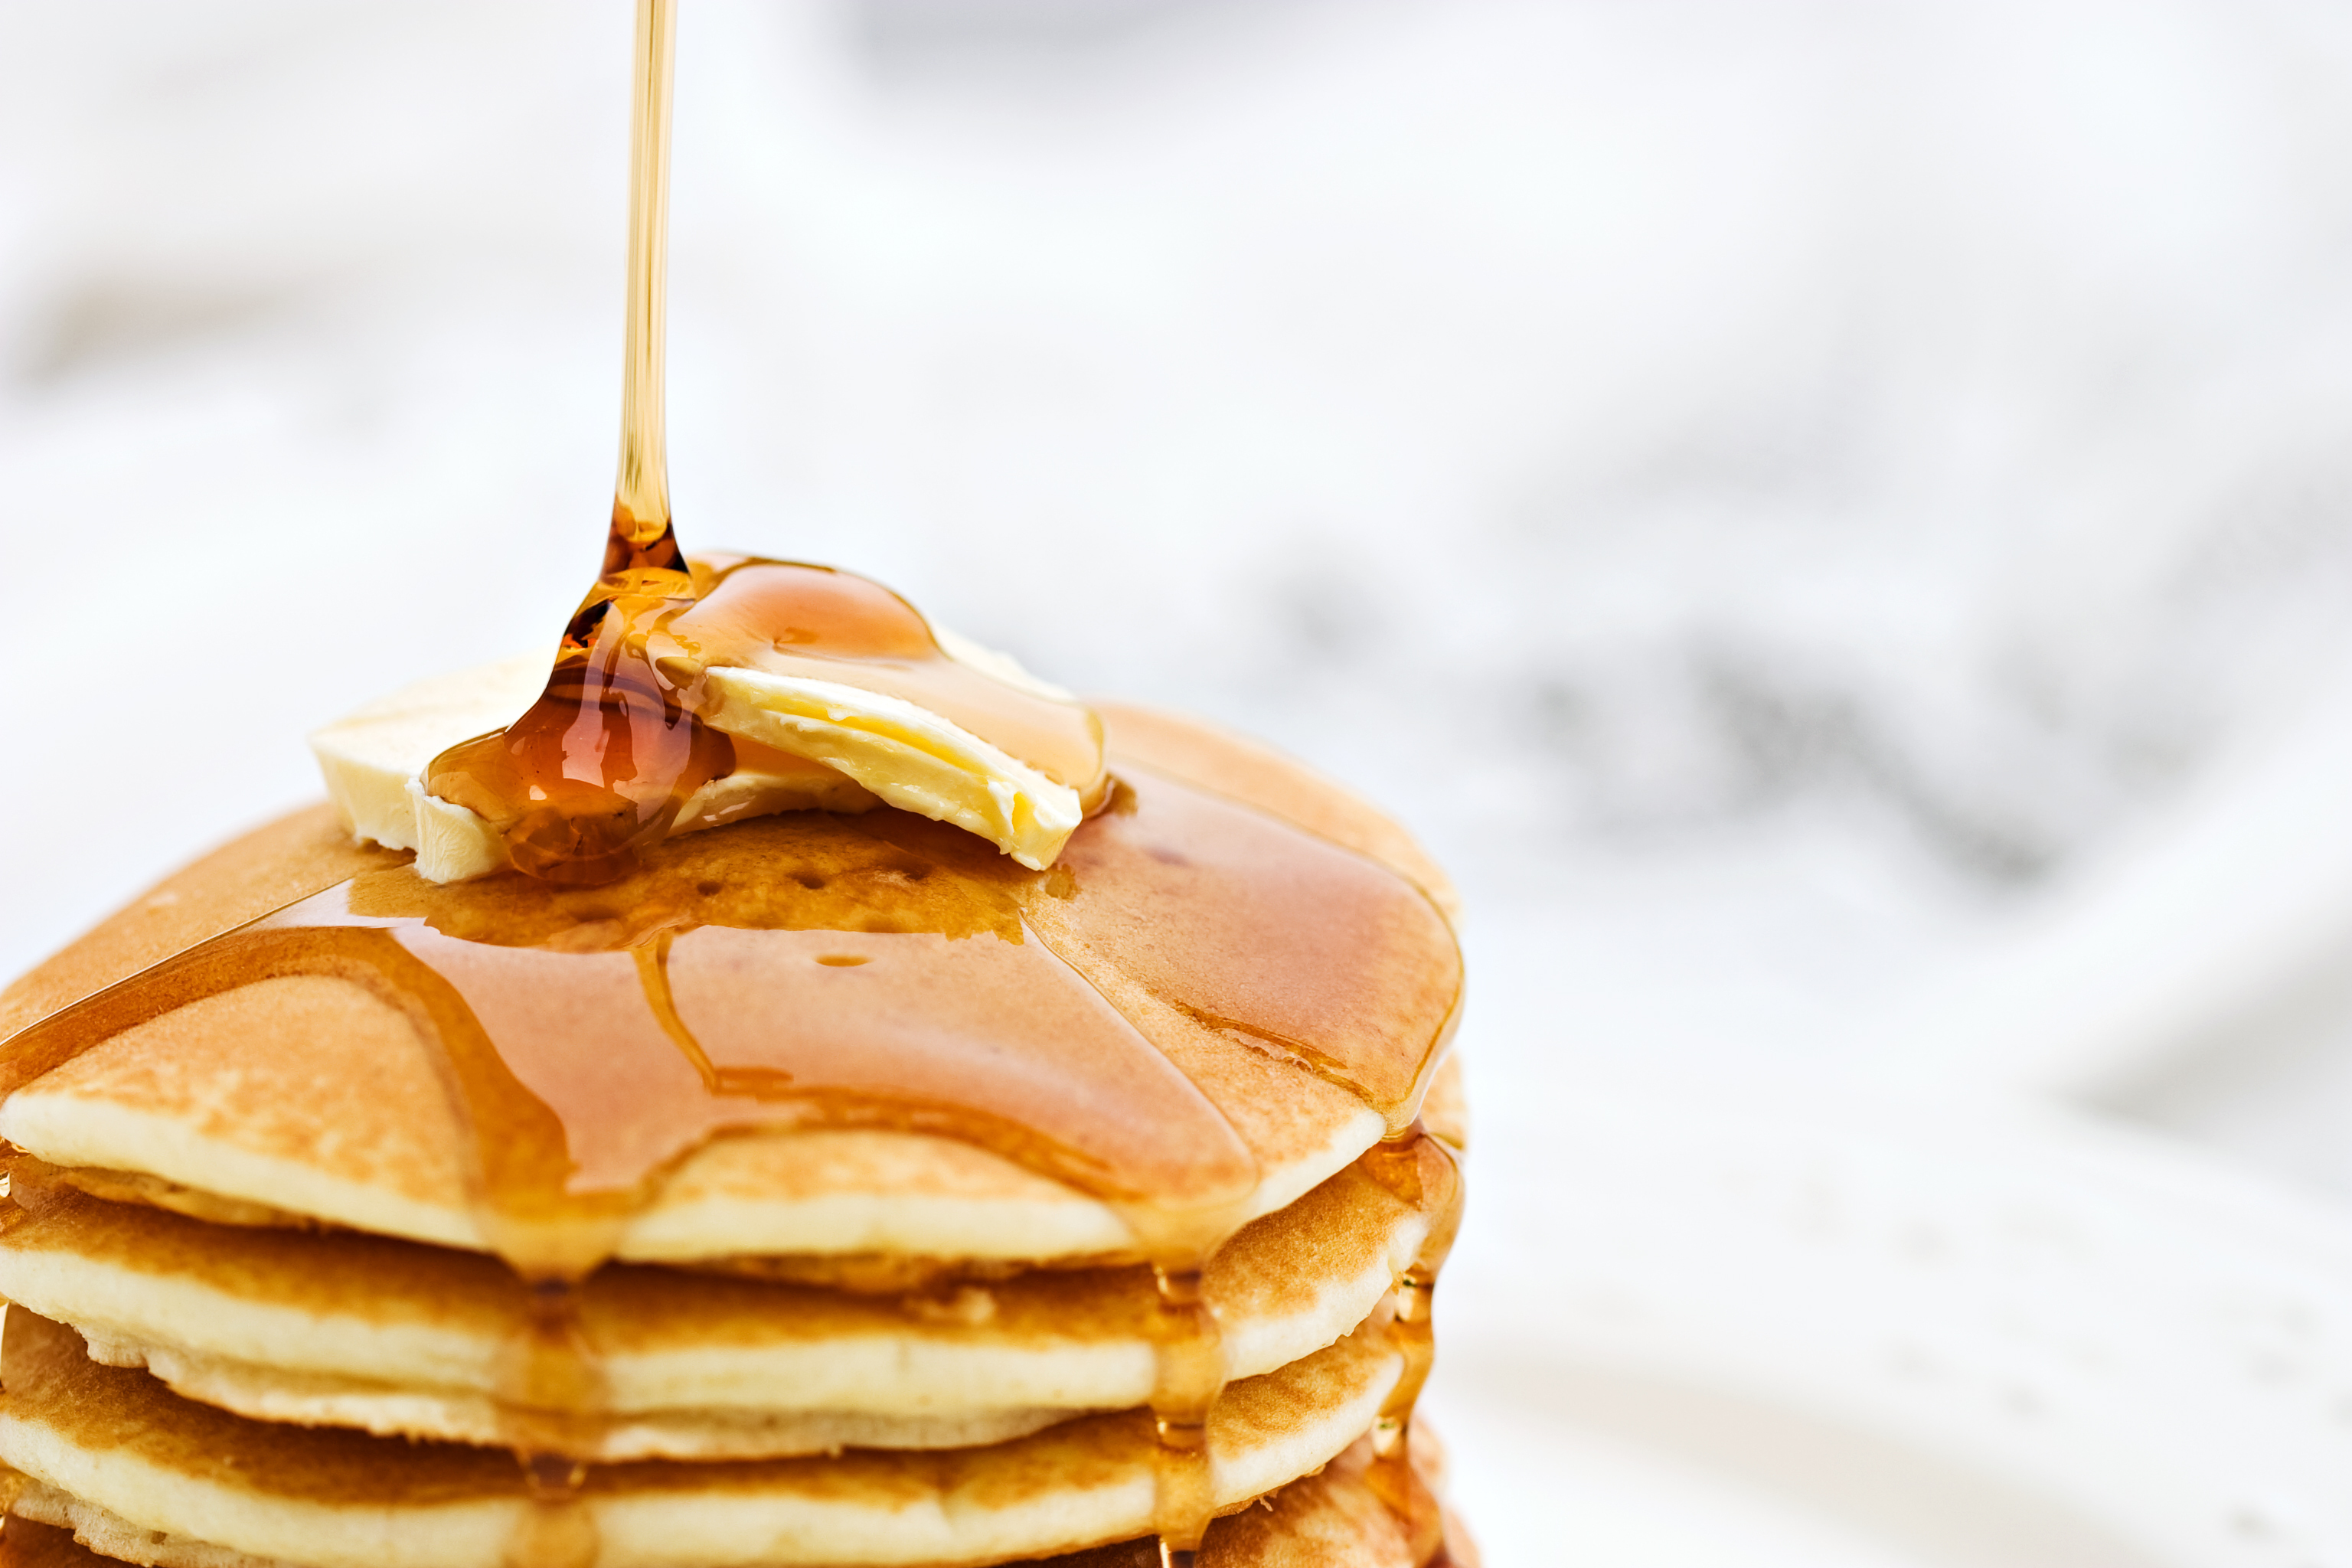 PANCAKES MAPLE SYRUP _ STOCK PHOTO _ PRINTABLE UNDER 250,000